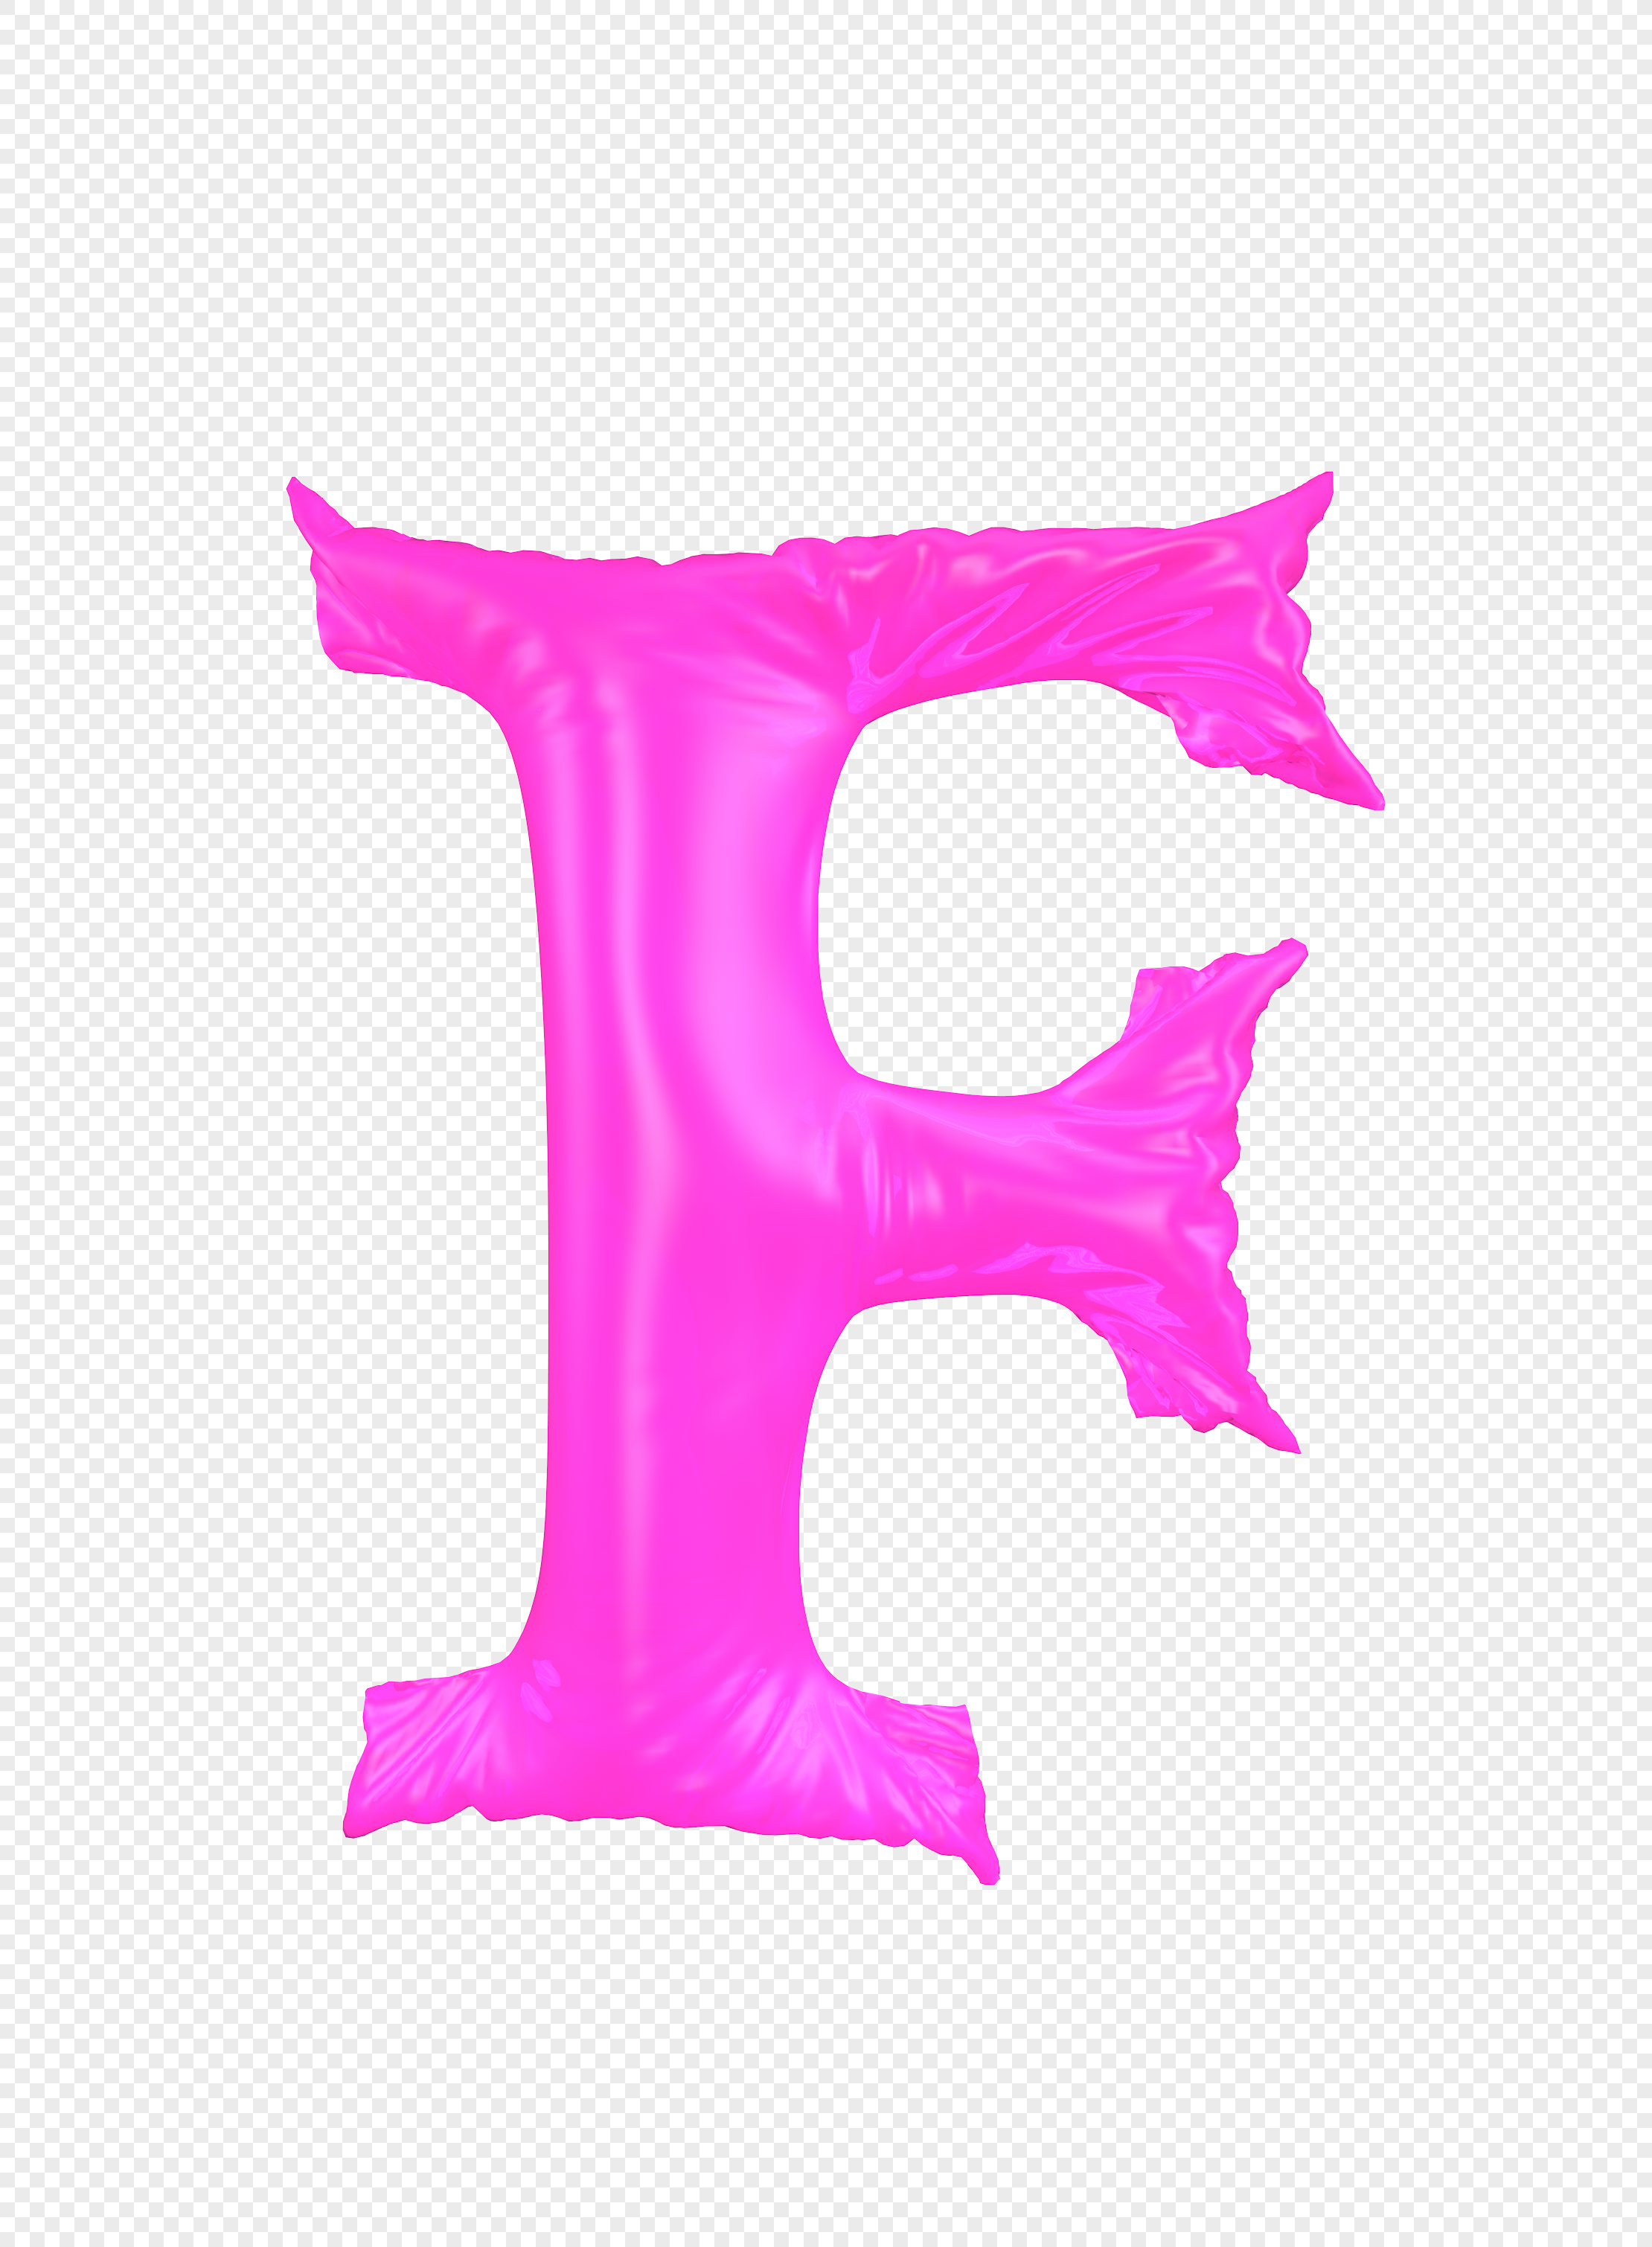 Ballooning letter f png image_picture free download ...